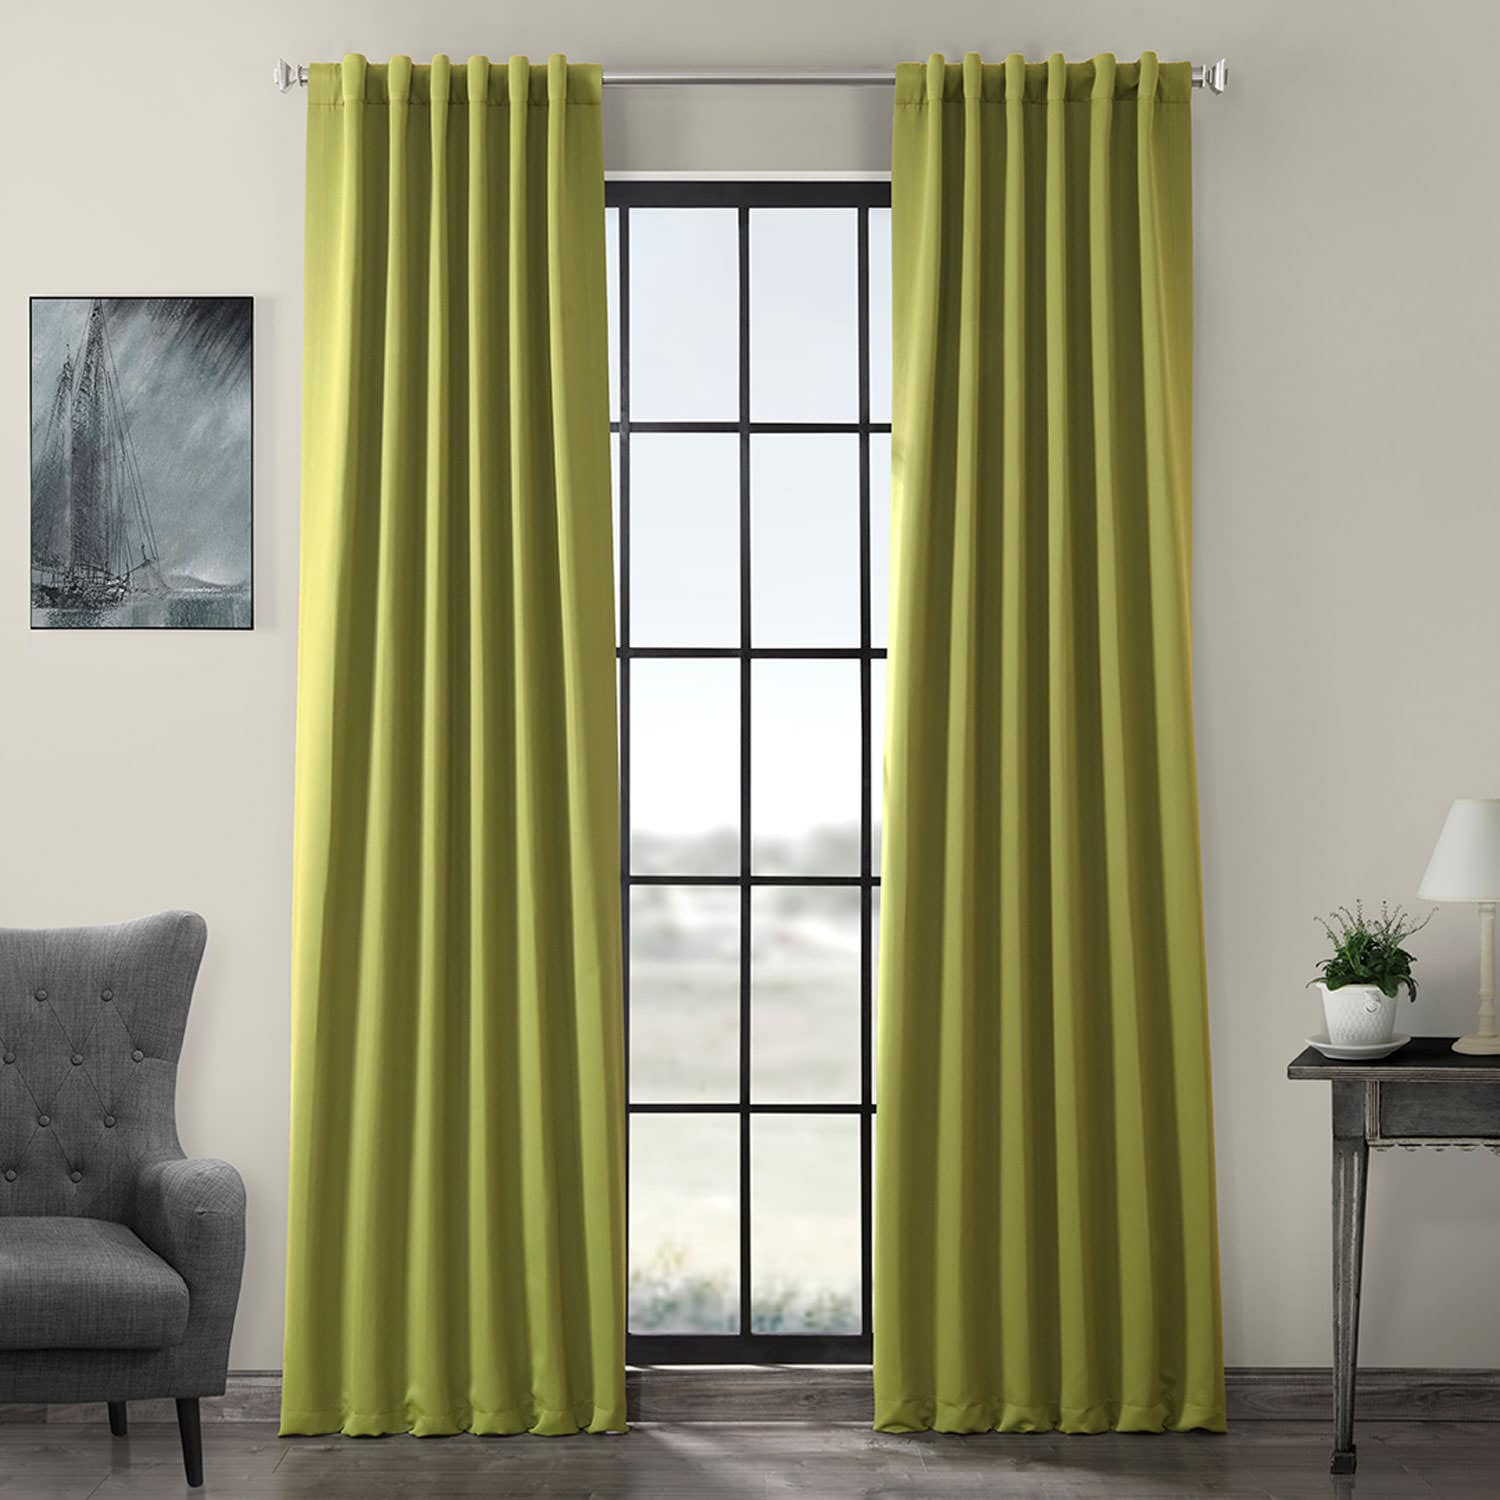 pixels pictures drapes different for and green orange rooms with kids curtains pin olive walls gallery